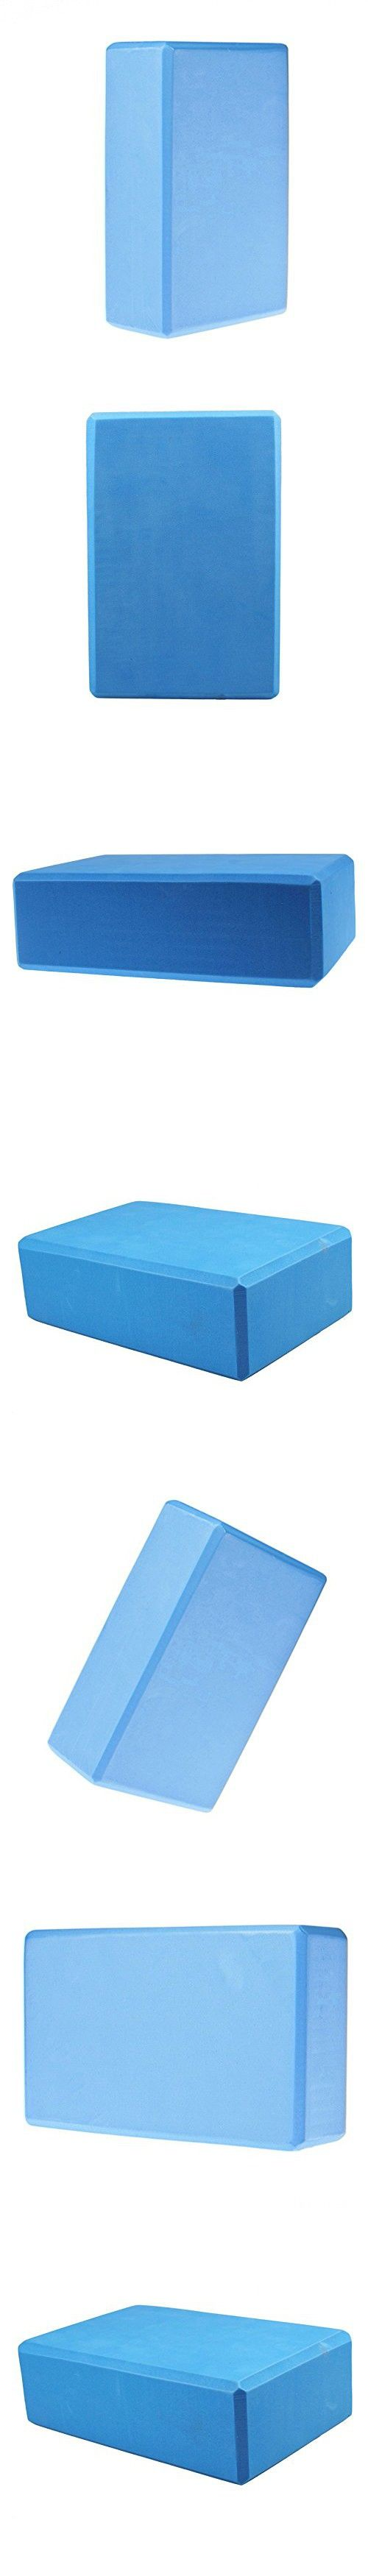 Blue Women 1pc Foaming Foam Yoga Block Brick Home Exercise Practice Fitness  Gym Sport Fitness Stretching a48ed3fc37